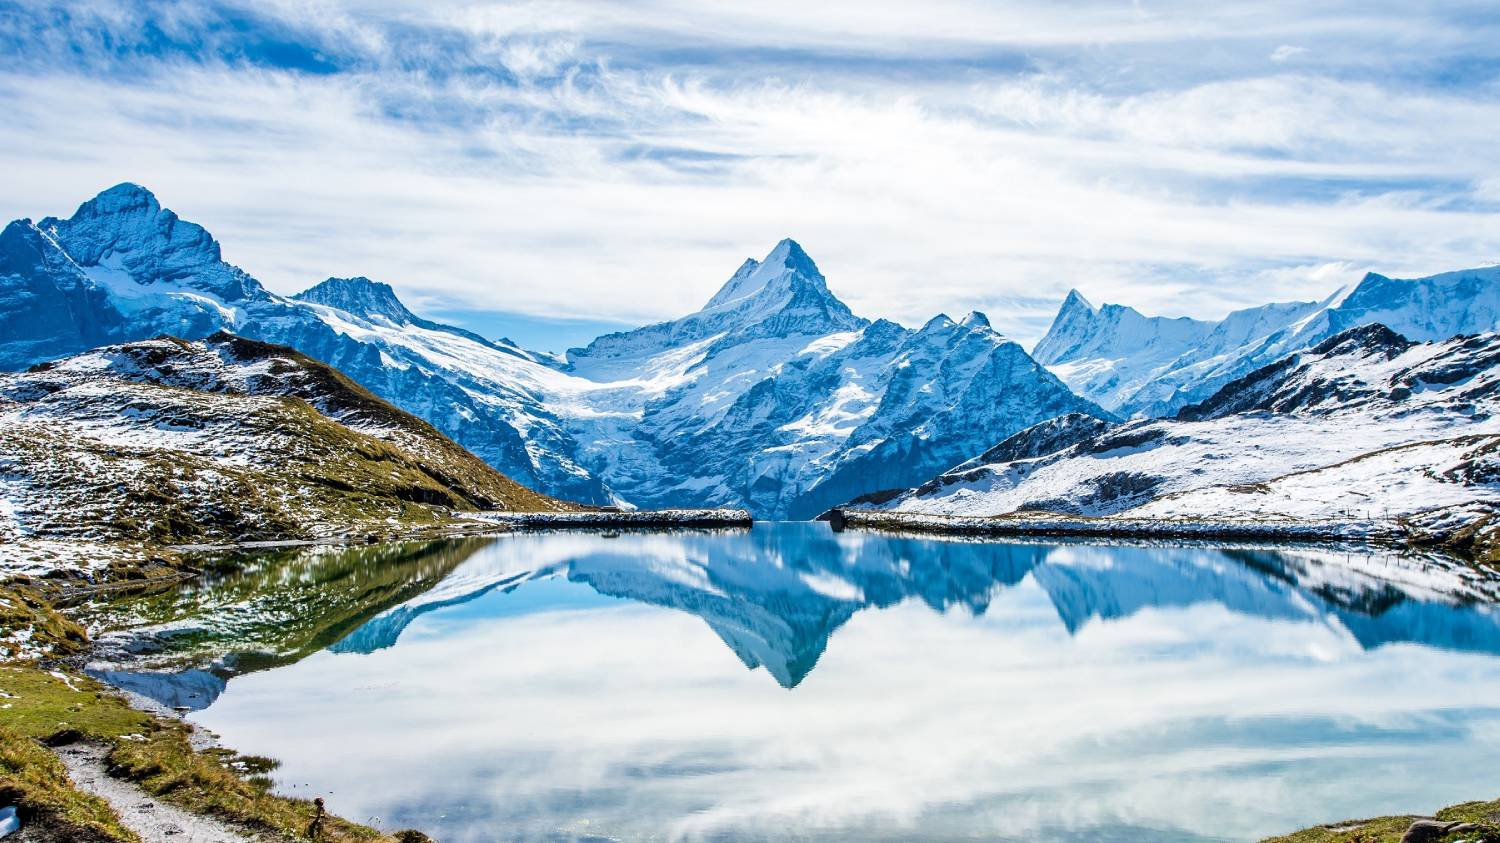 Swiss Alps - The Best Places To Visit In Switzerland